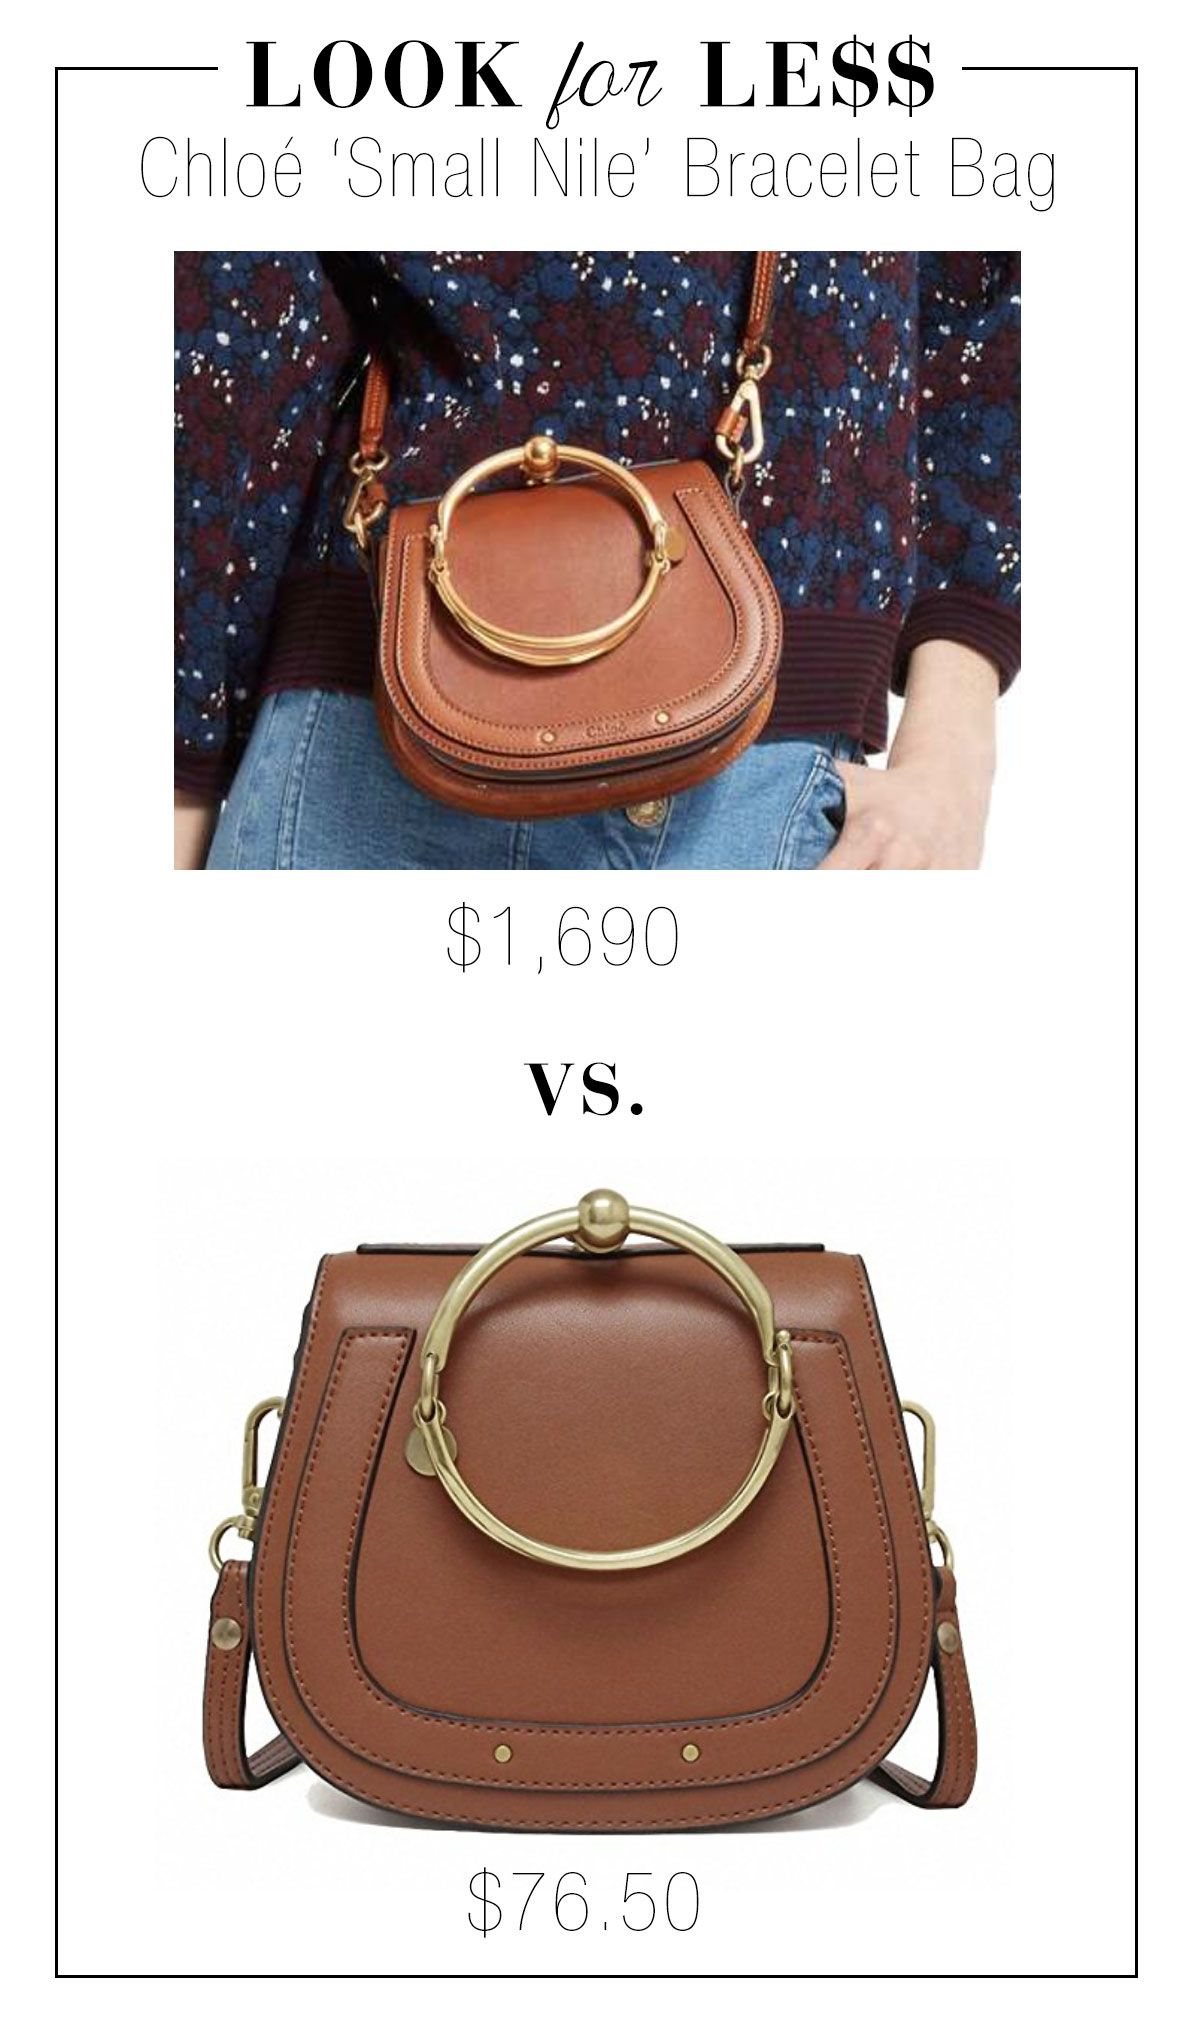 7d00841b60 Look for Less: Chloe 'Small Nile' Bracelet Bag | The Look for Less ...